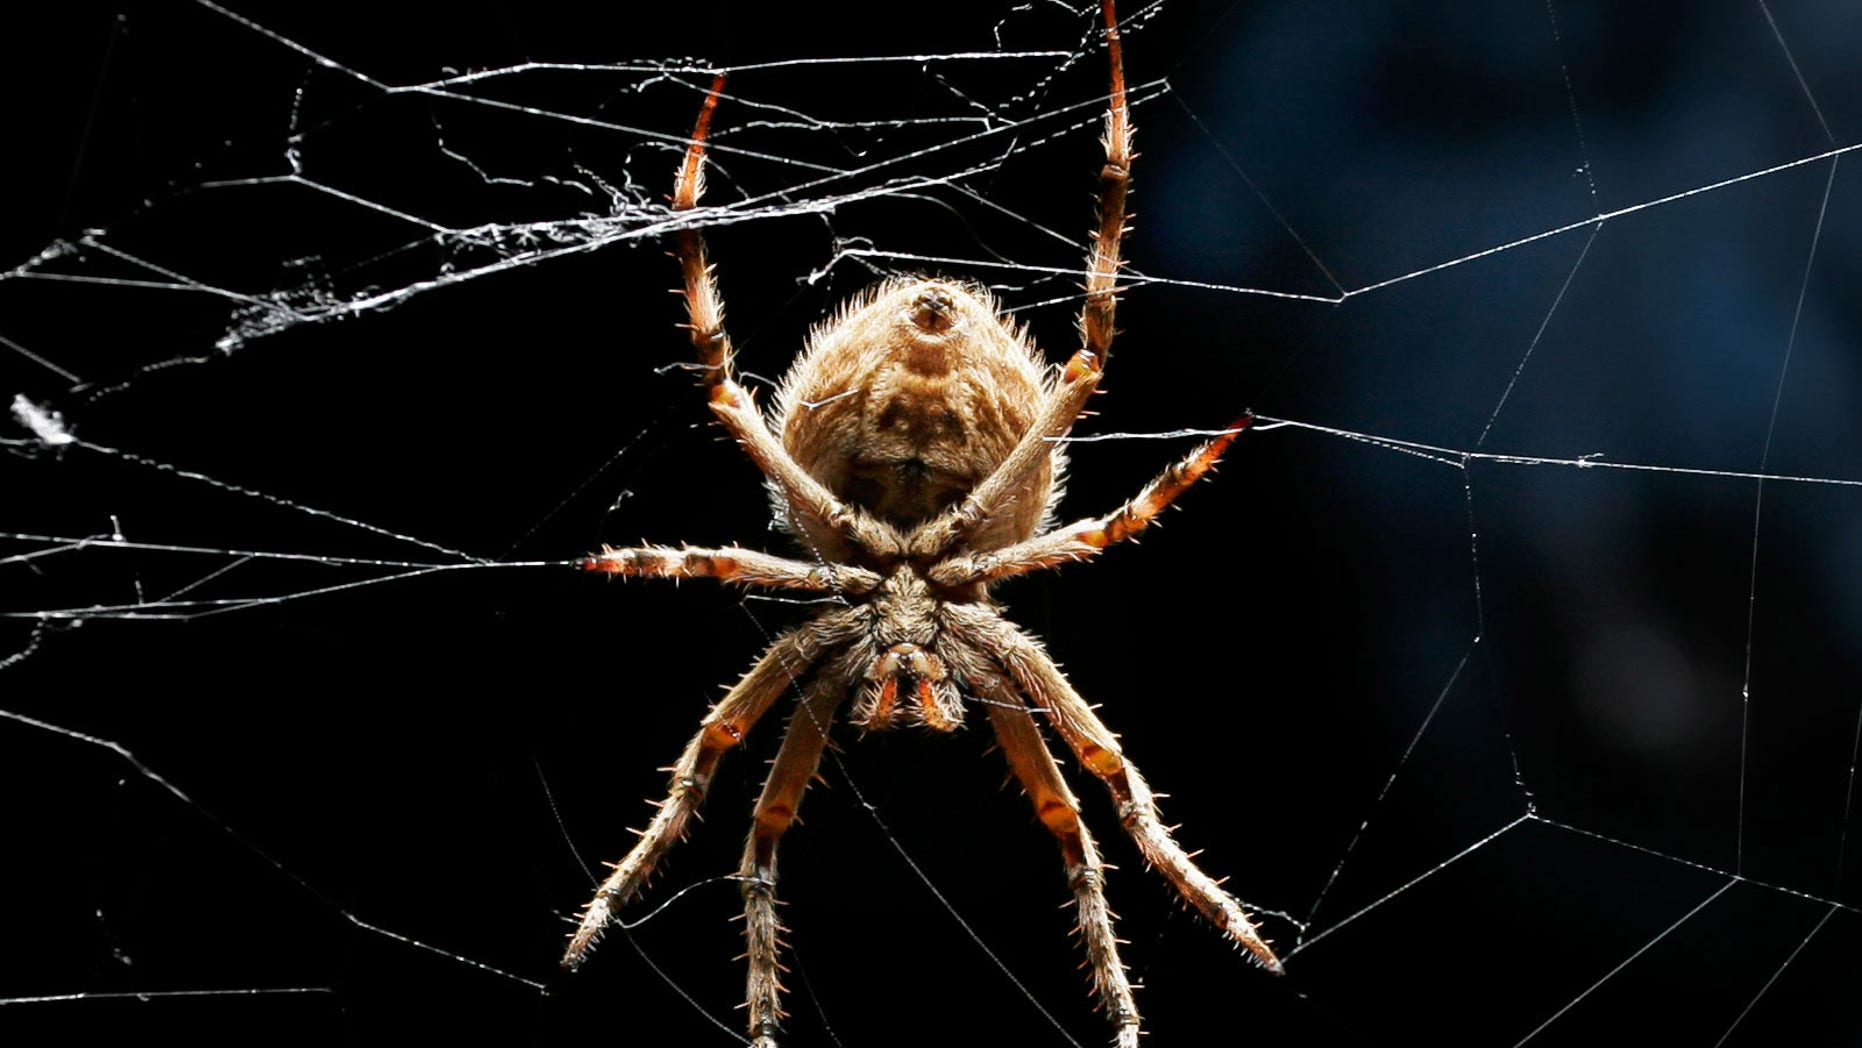 An orb-weaver spider relaxes in its web.